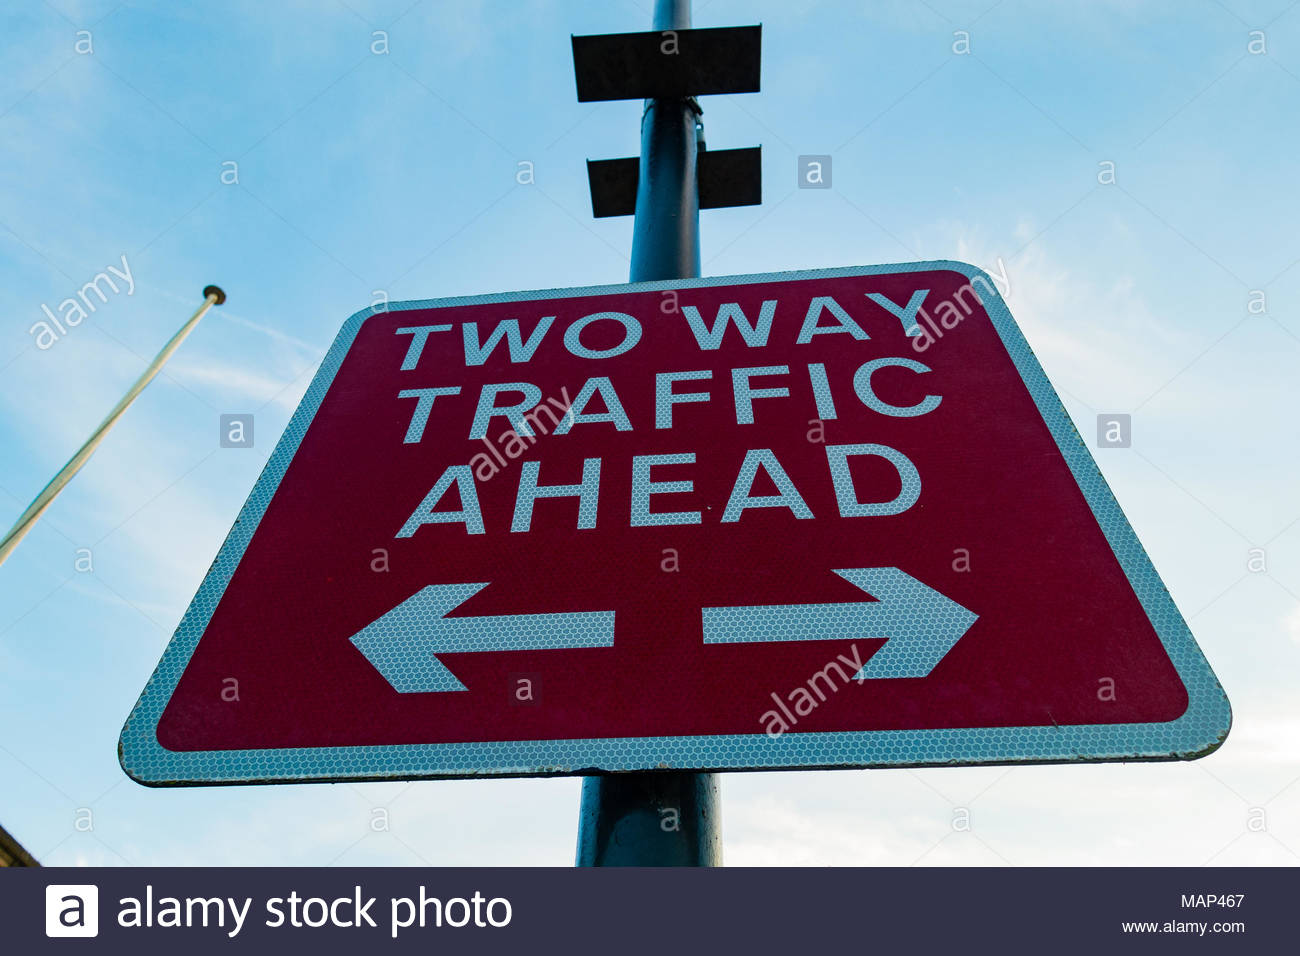 Two way traffic ahead sign, white reflective lettering on a red background, Southport, Merseyside England UK Stock Photo